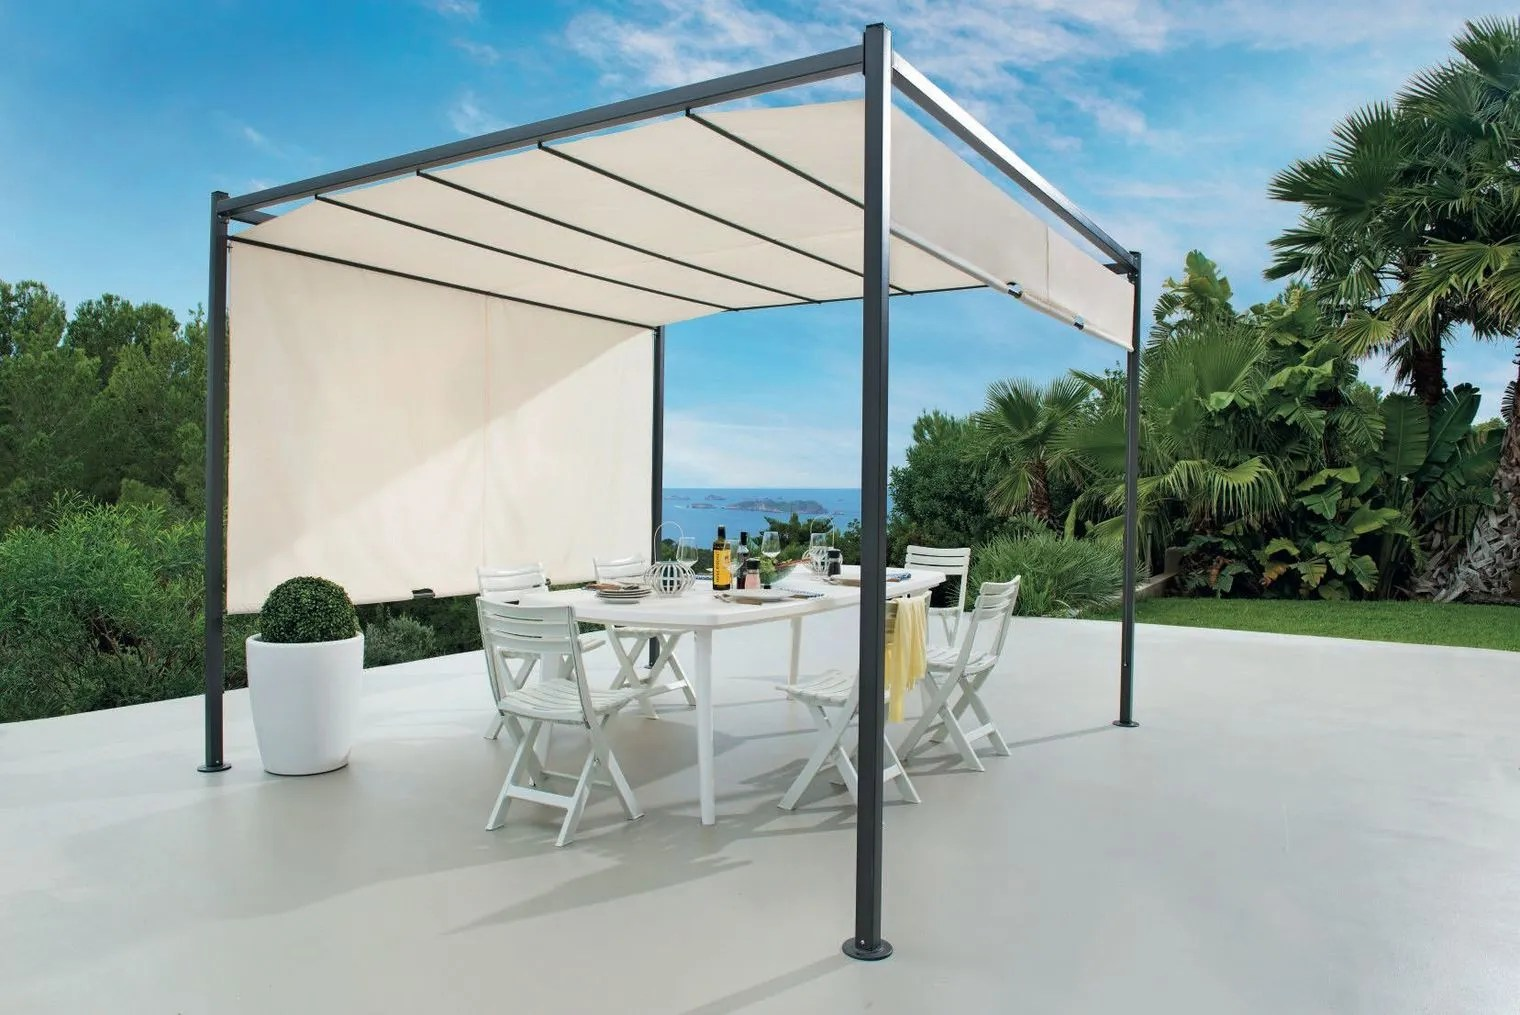 Applique Exterieur Bricomarché Brise Vue Retractable Brico Depot Beautiful Paravent